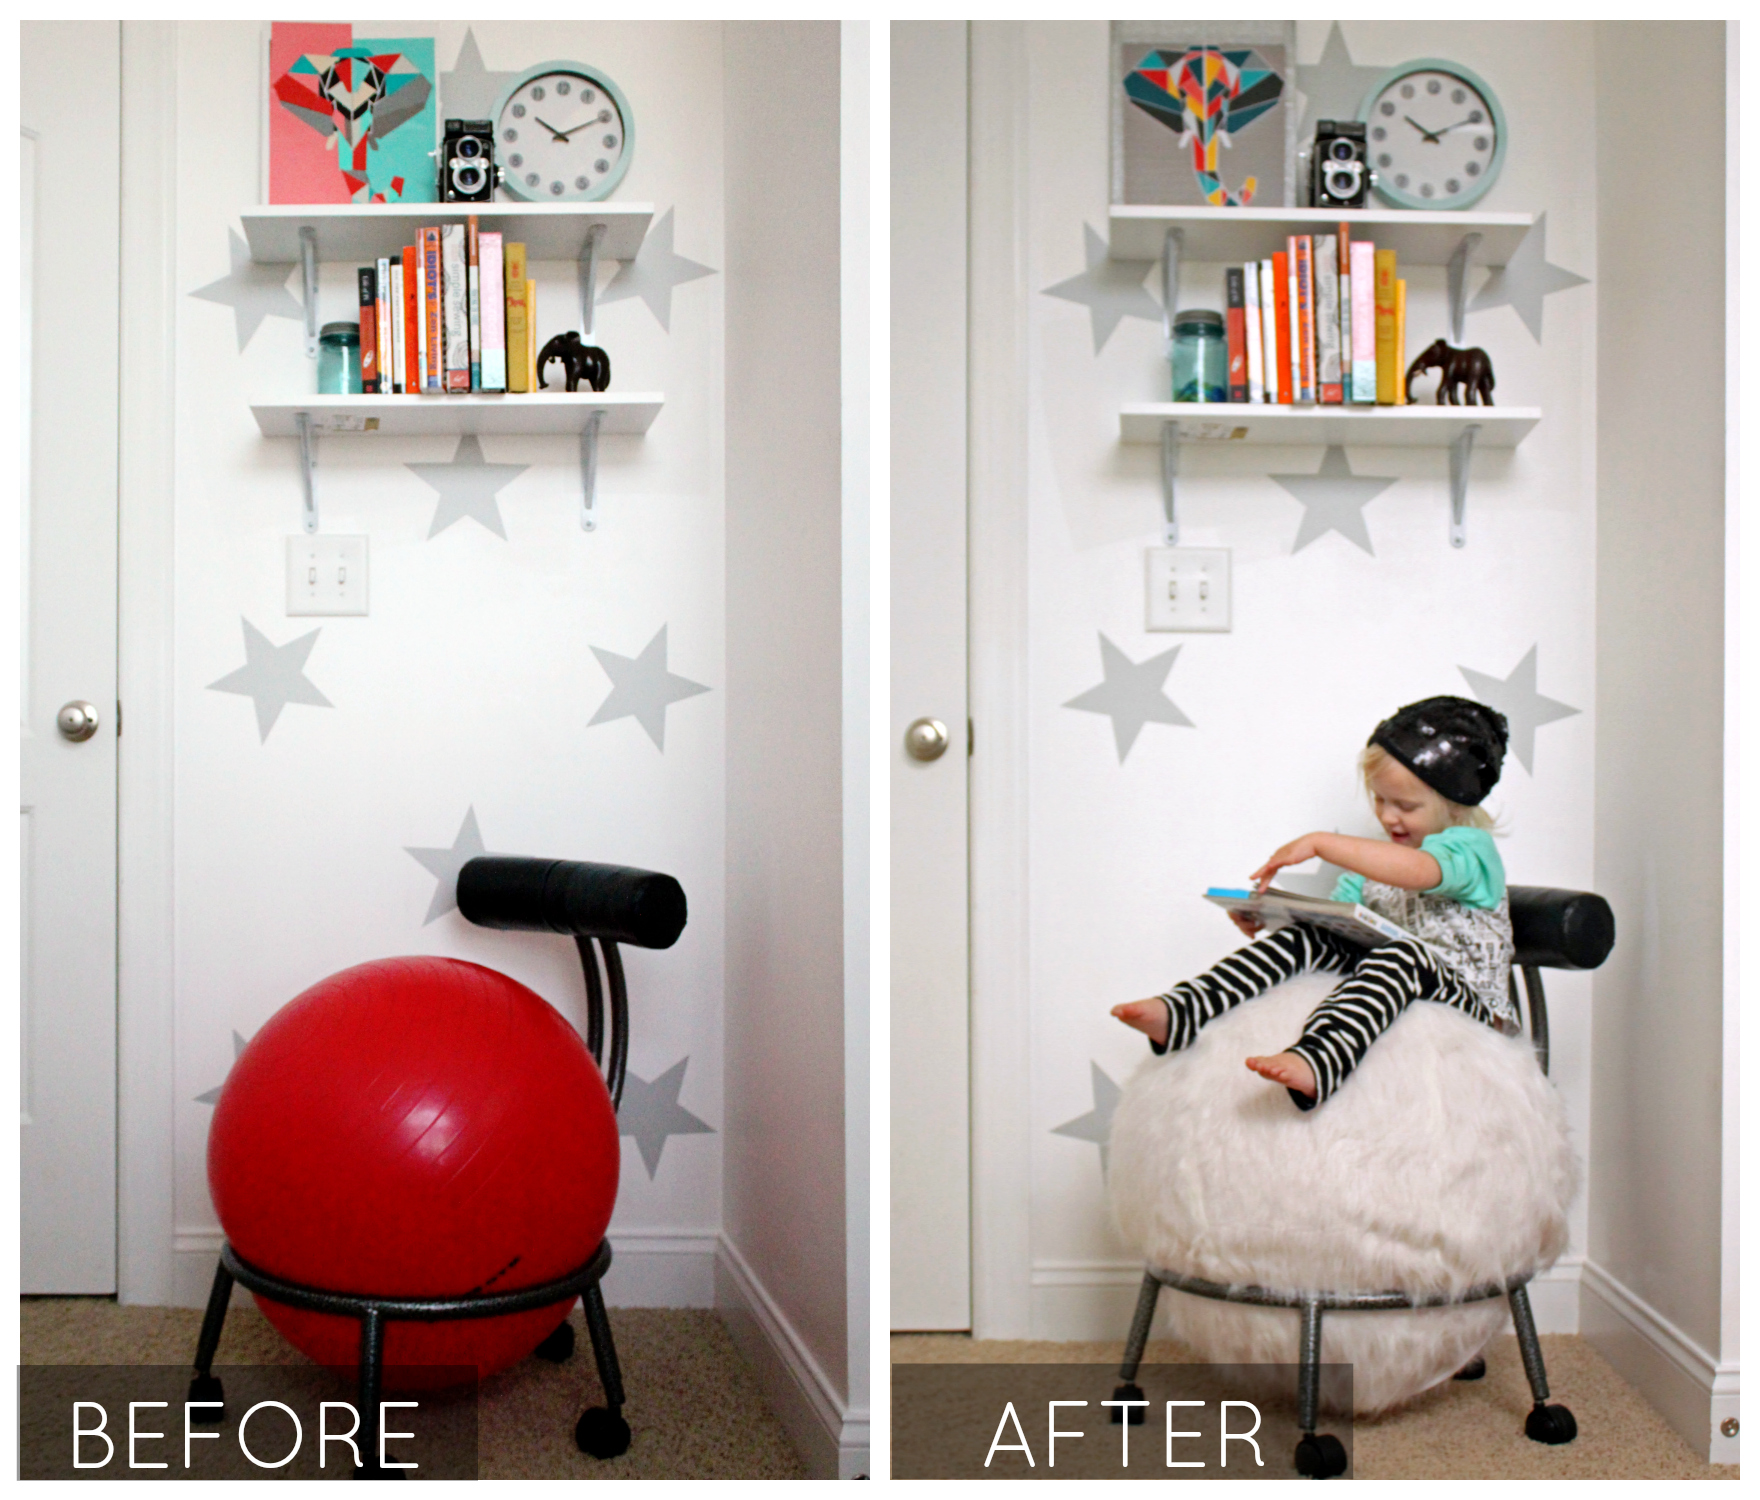 chair gym before and after college bean bag chairs how to revive a with new upholstery